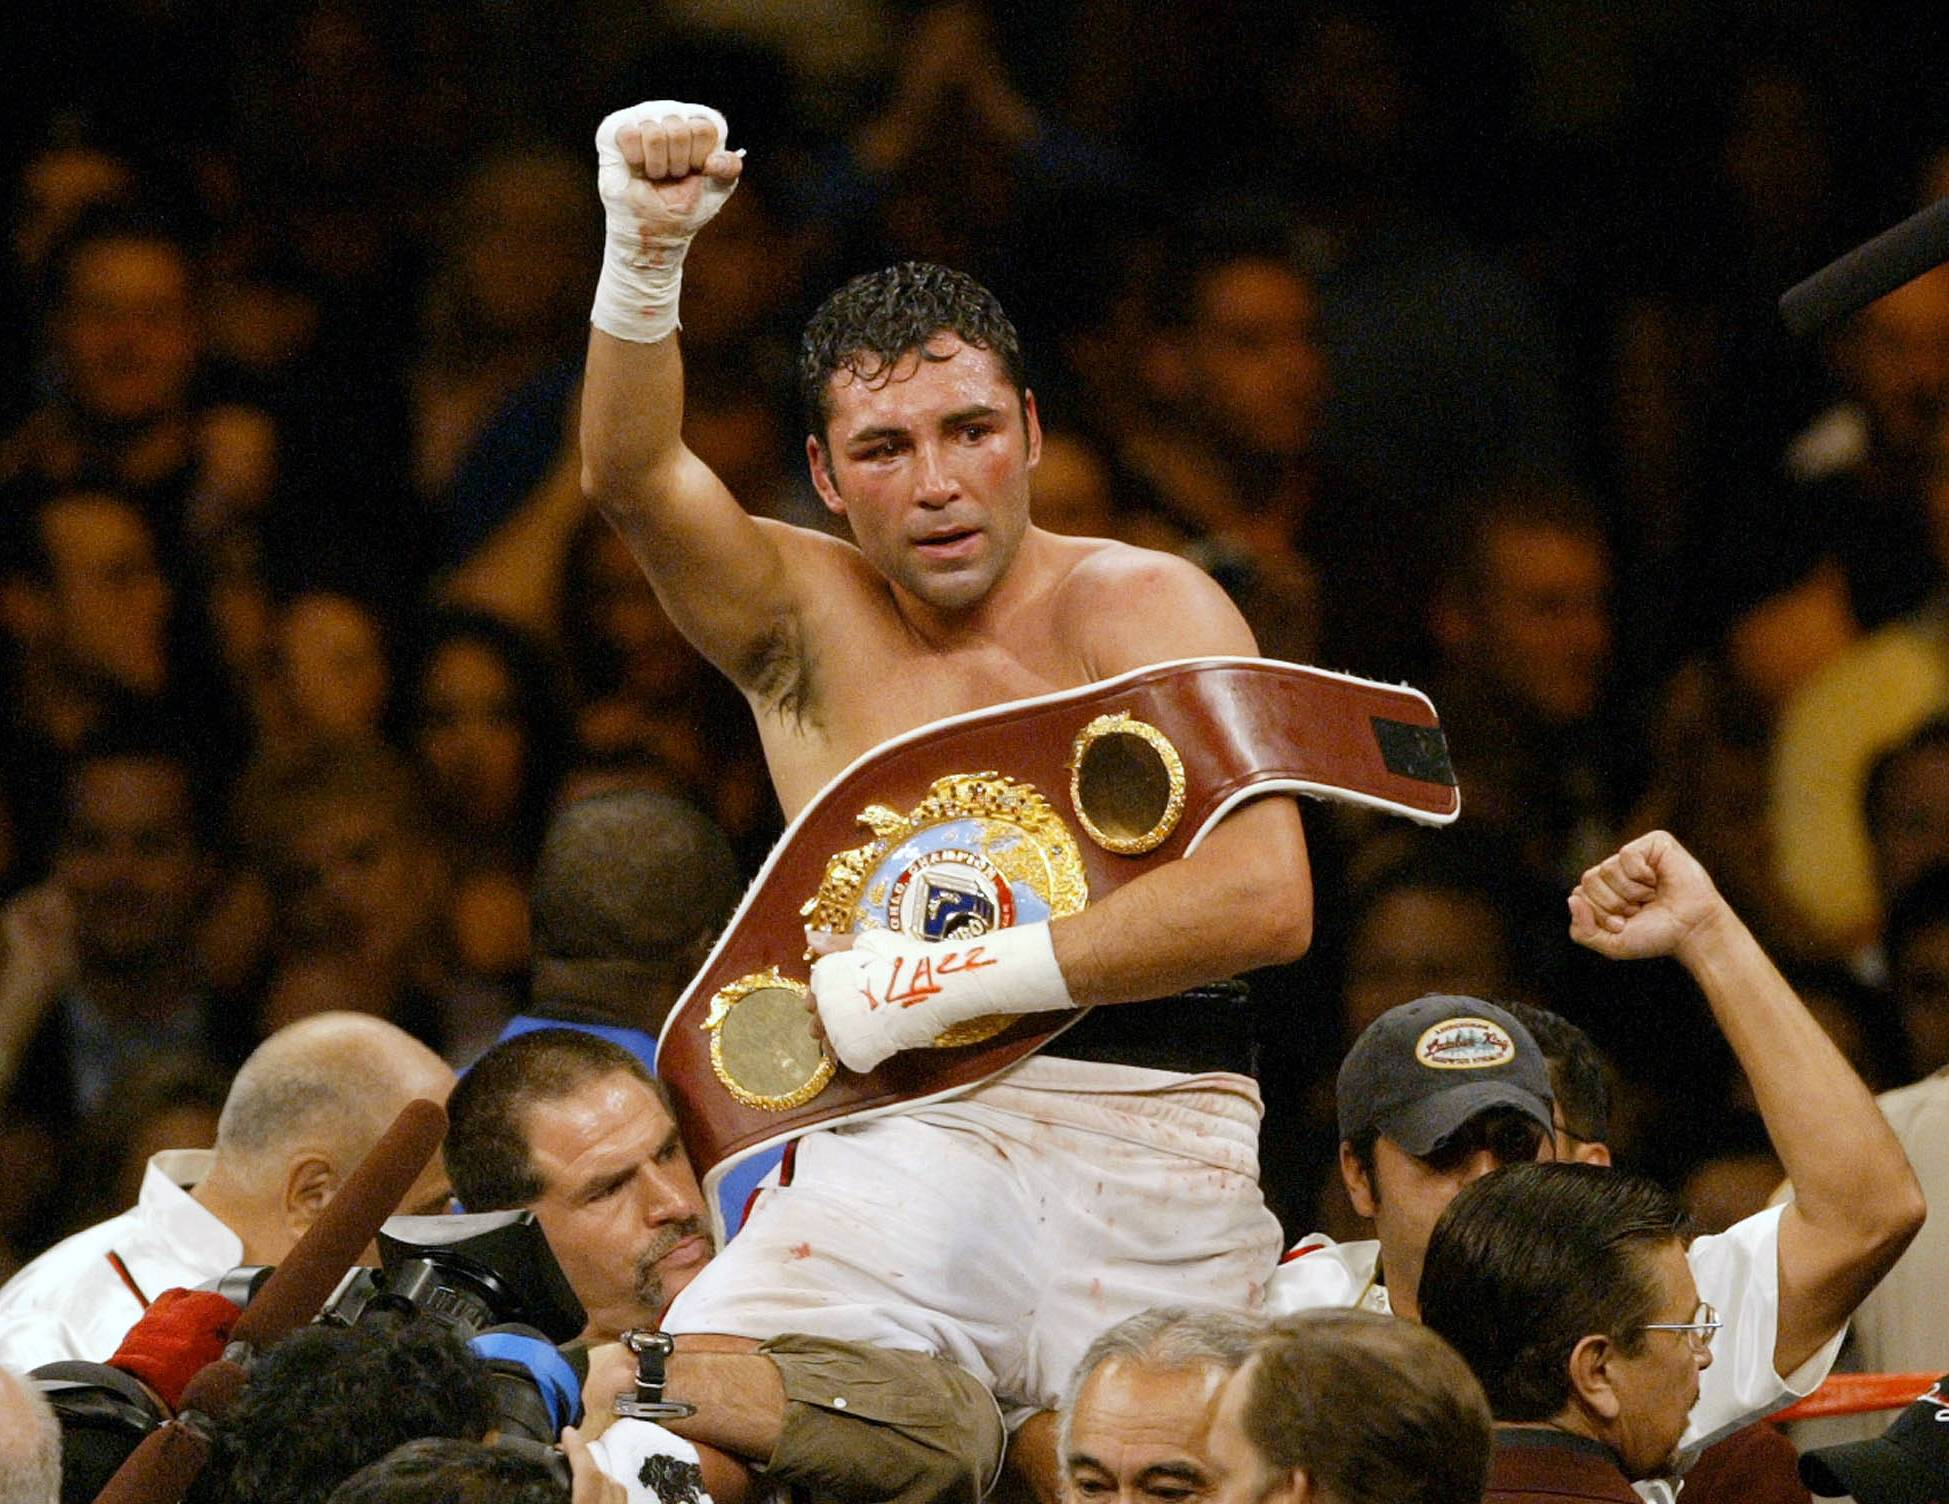 In this June 5, 2004 file photo, Oscar De La Hoya celebrates his unanimous decision victory over Germany's Felix Sturm following their WBO world middleweight title fight in Las Vegas. De La Hoya got drunk the night he won the only boxing gold for the U.S. in the 1992 Olympics, and was still drinking when he lost his last fight to Manny Pacquiao. Now sober after a second stint in rehab he's in a fight of another kind for control of his boxing company.